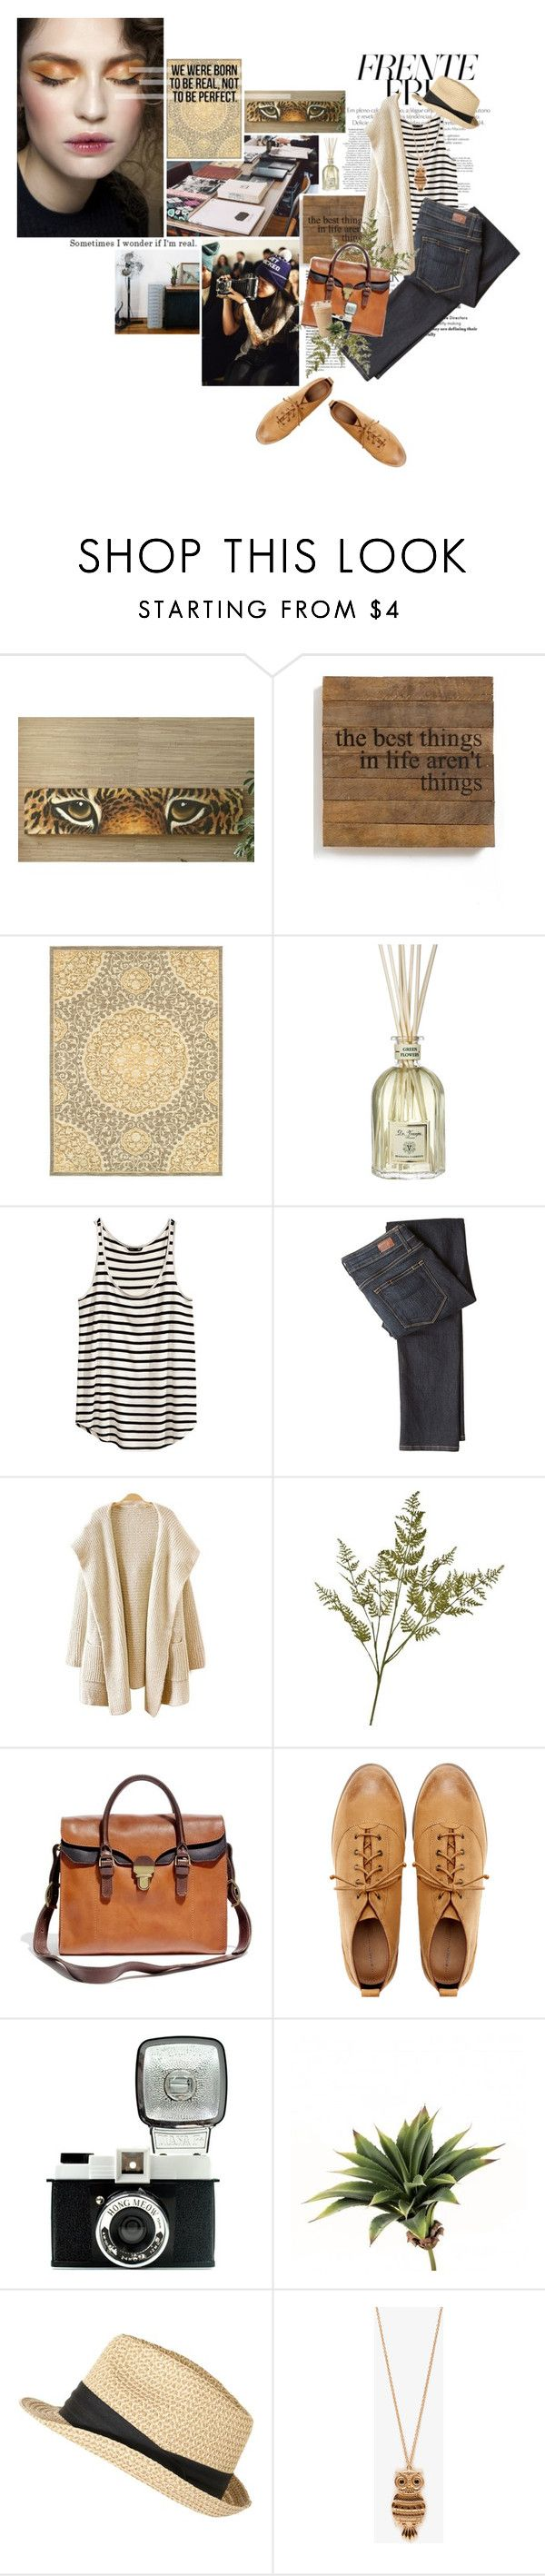 """""""Falling for fall weather"""" by skybluchik89 ❤ liked on Polyvore featuring Anja, Second Nature By Hand, Dr. Vranjes, H&M, Paige Denim, Madewell, Pull&Bear, fred flare, Jane Norman and Forever 21"""